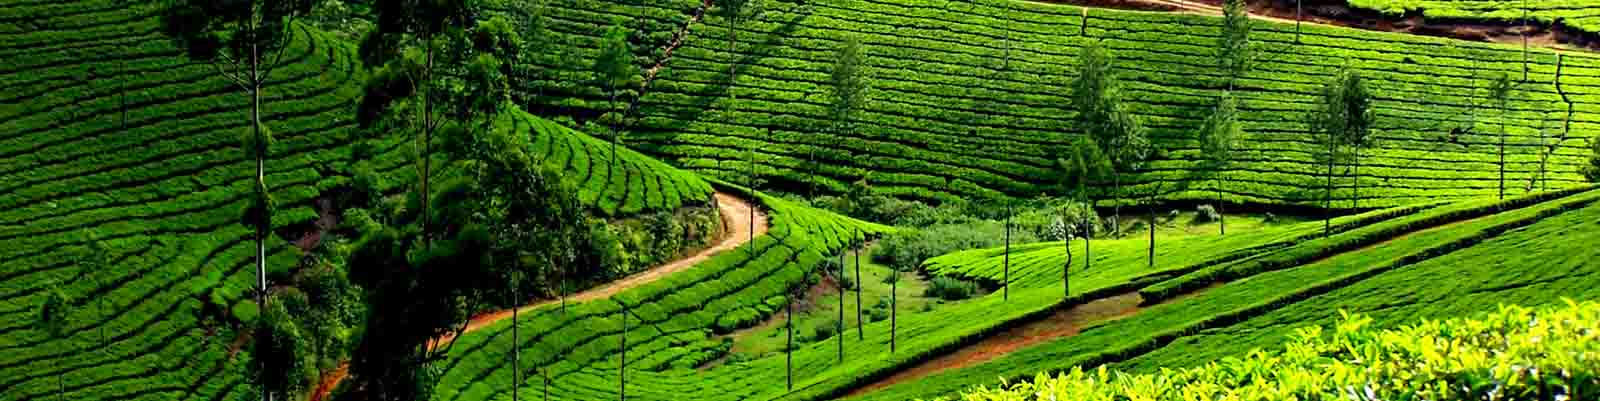 kerala tour and honeymoon packages from Raipur